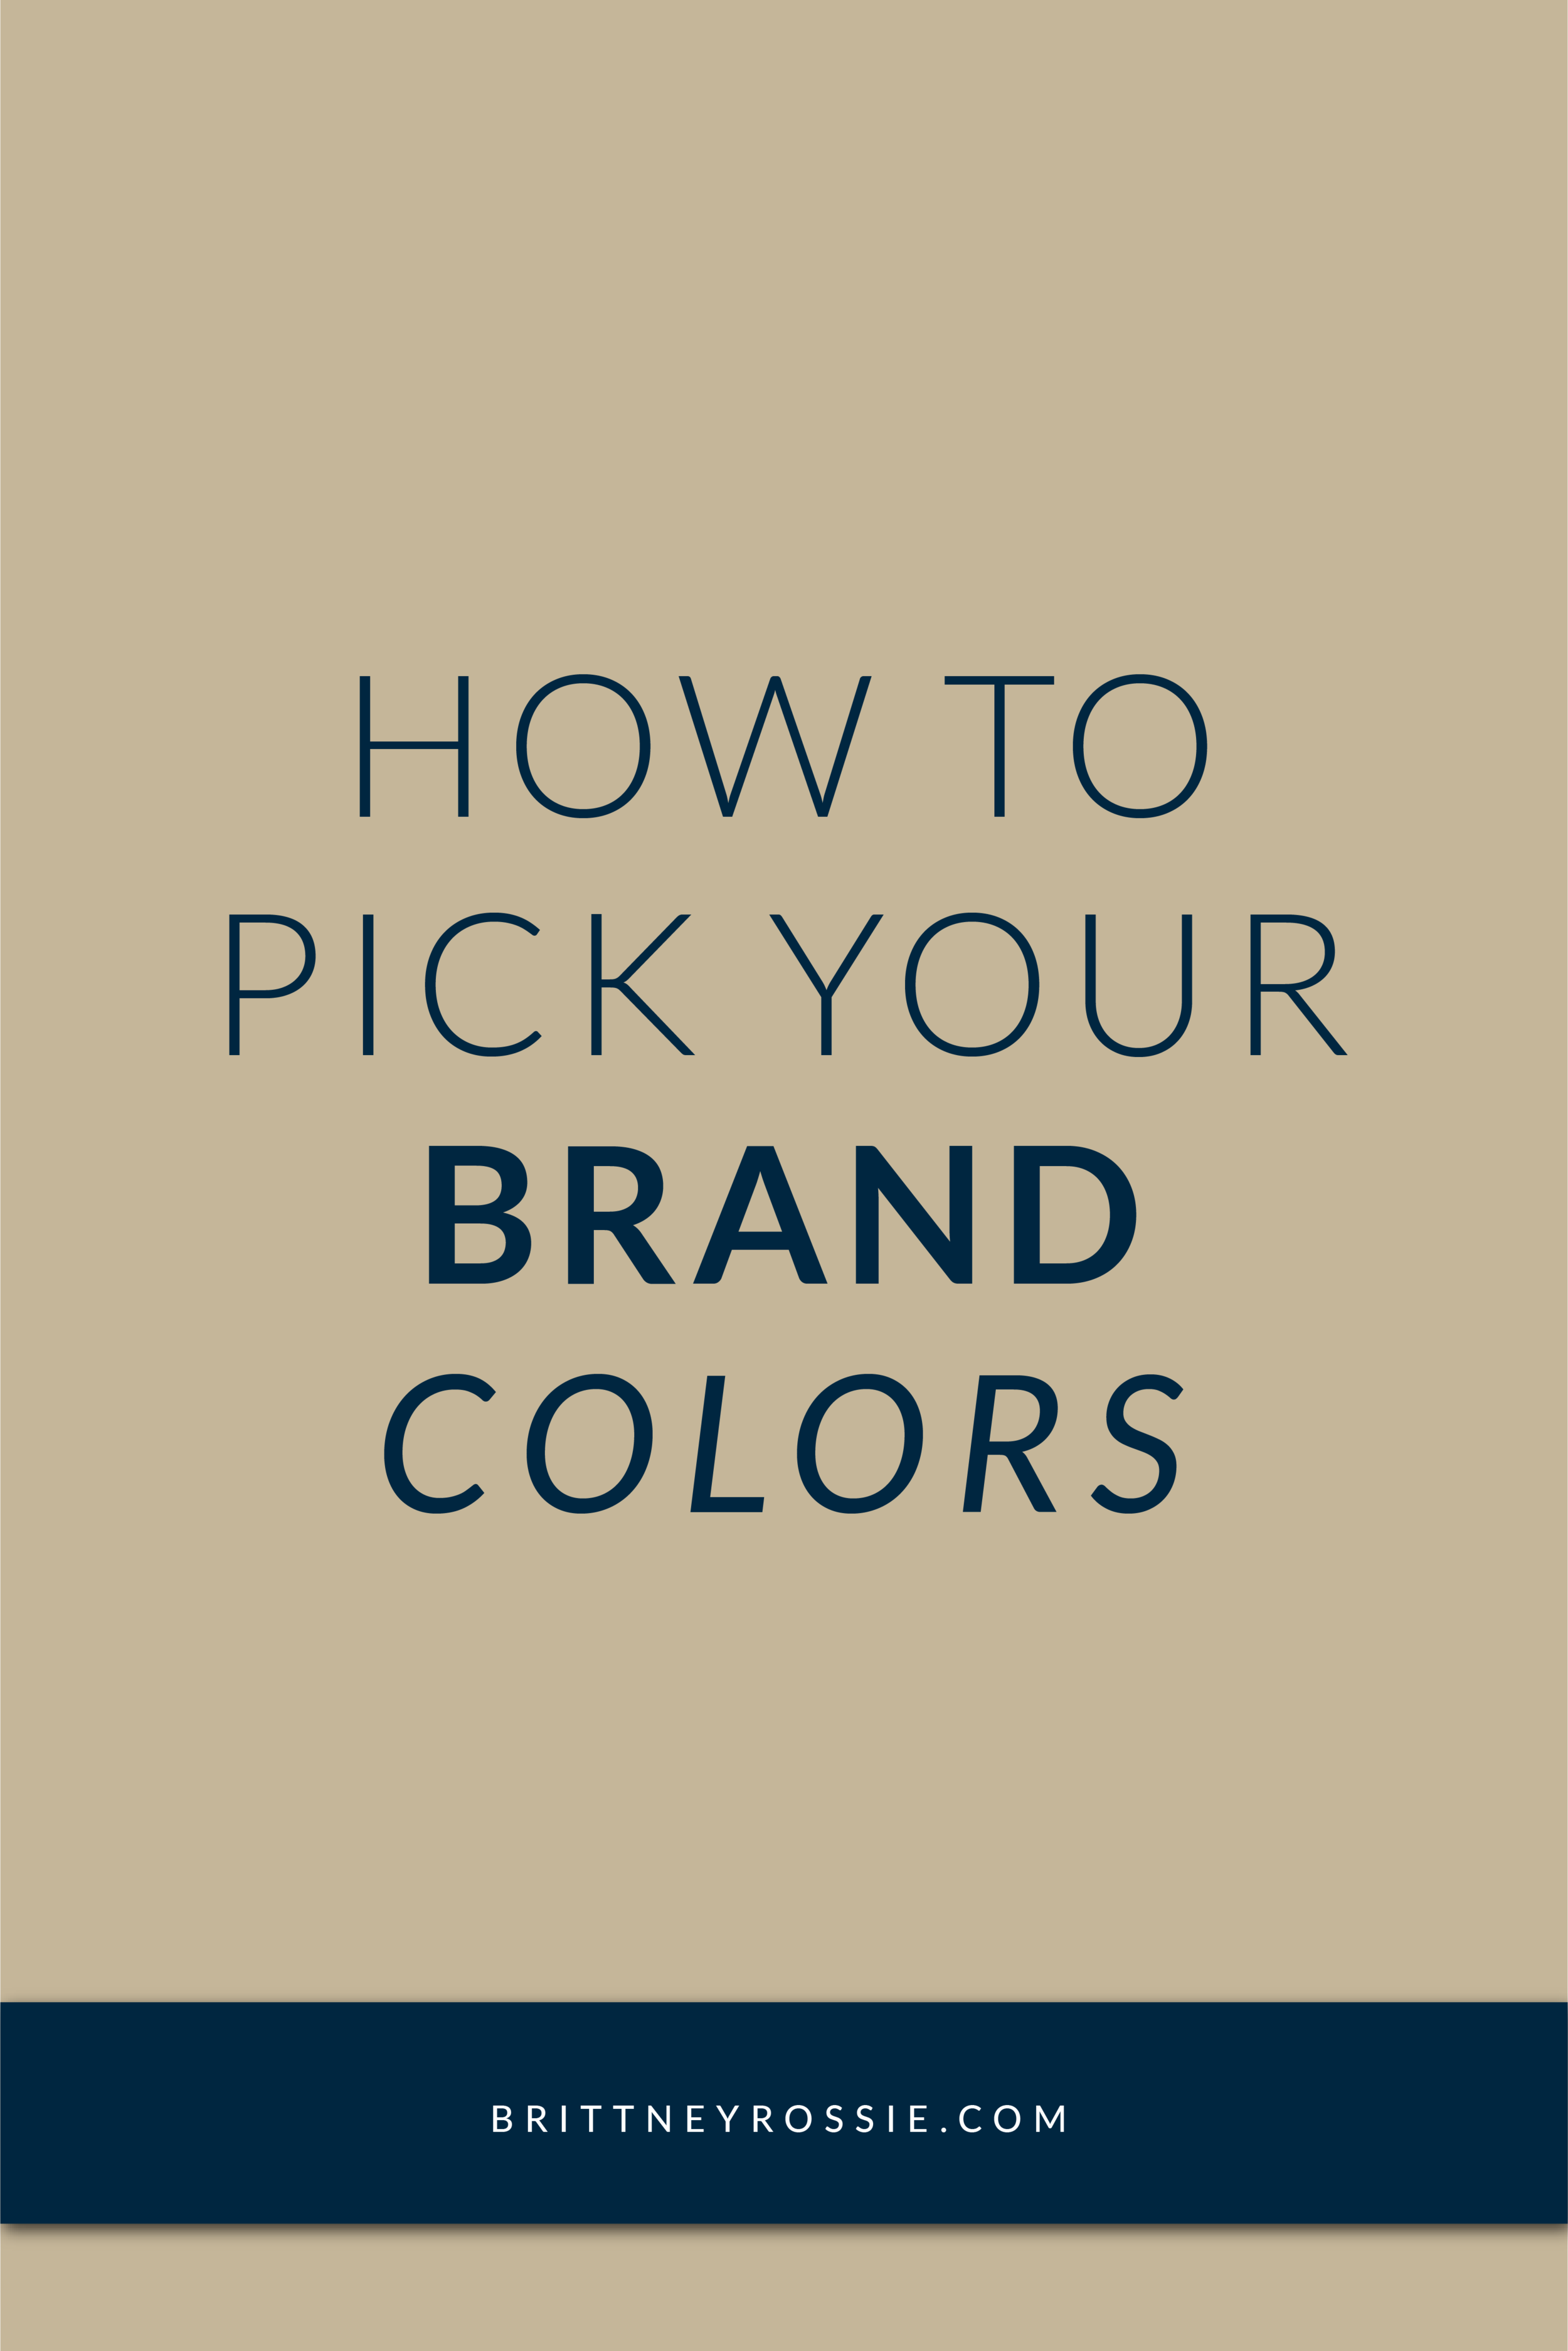 How-to-Pick-Your-Brand-Colors_BrittneyRossie.com